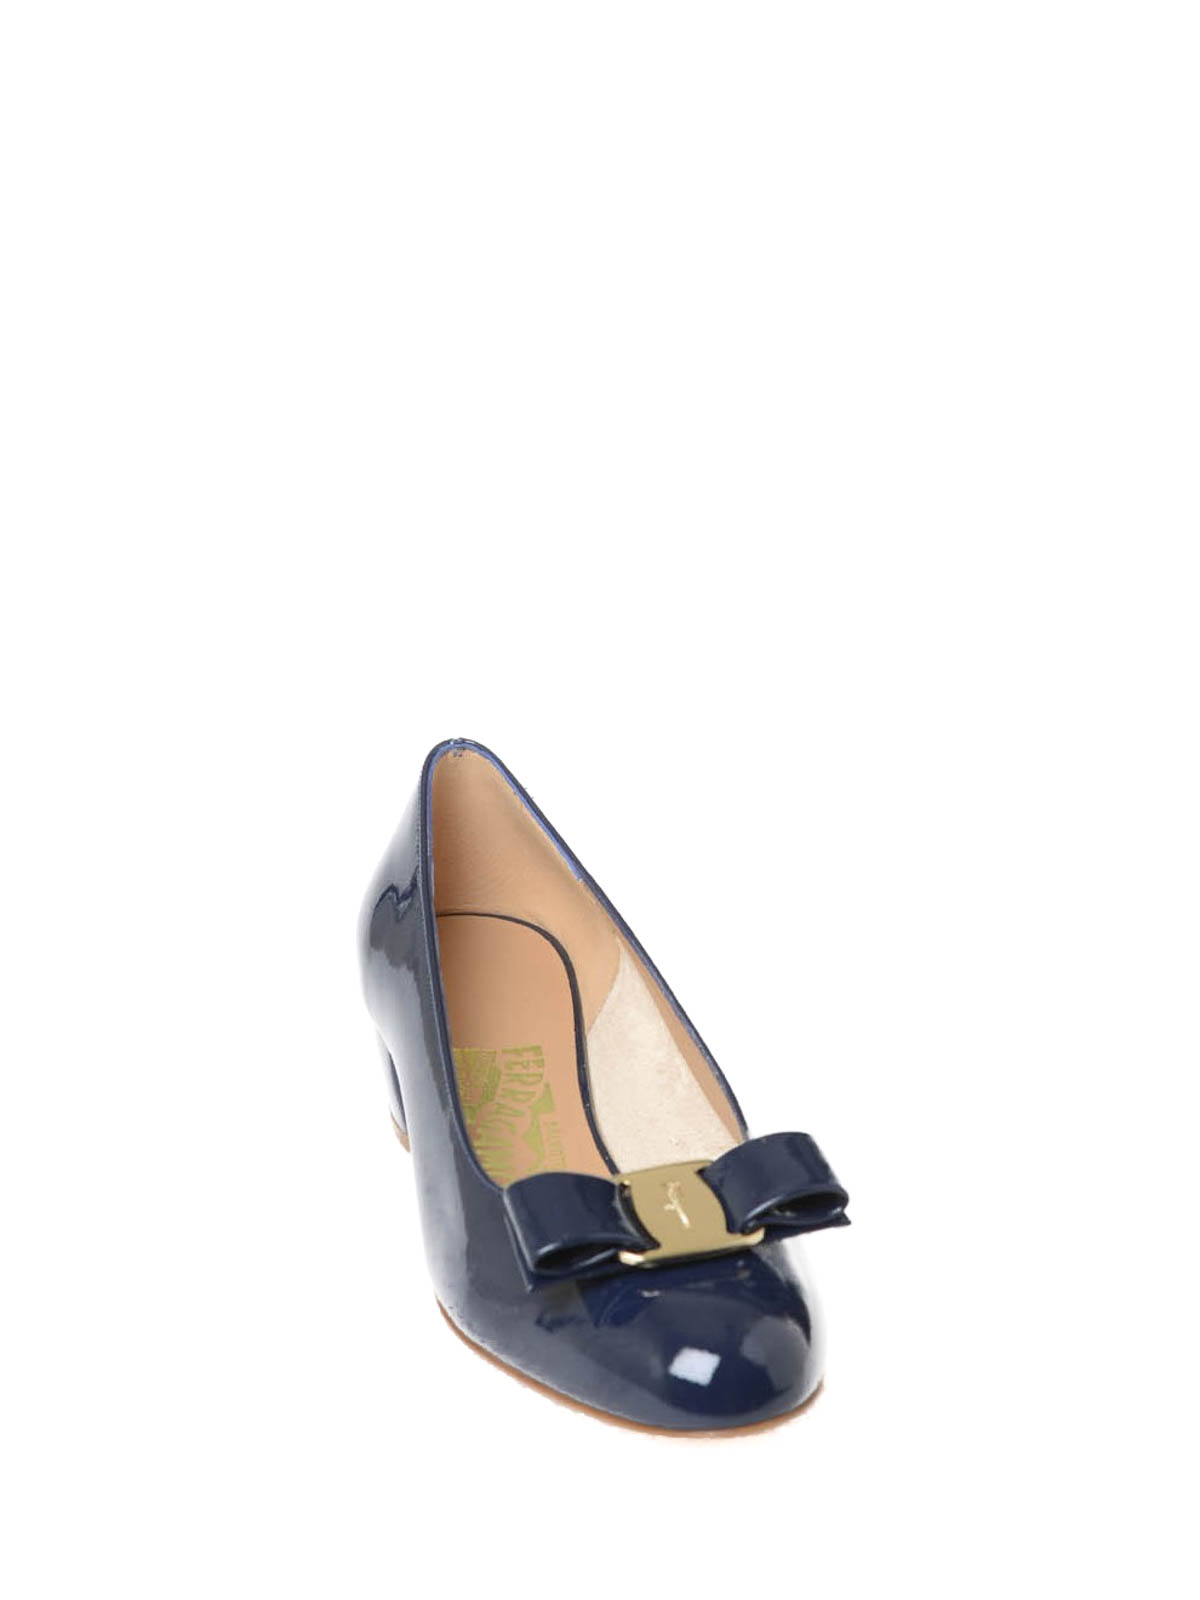 Vara patent leather court shoes